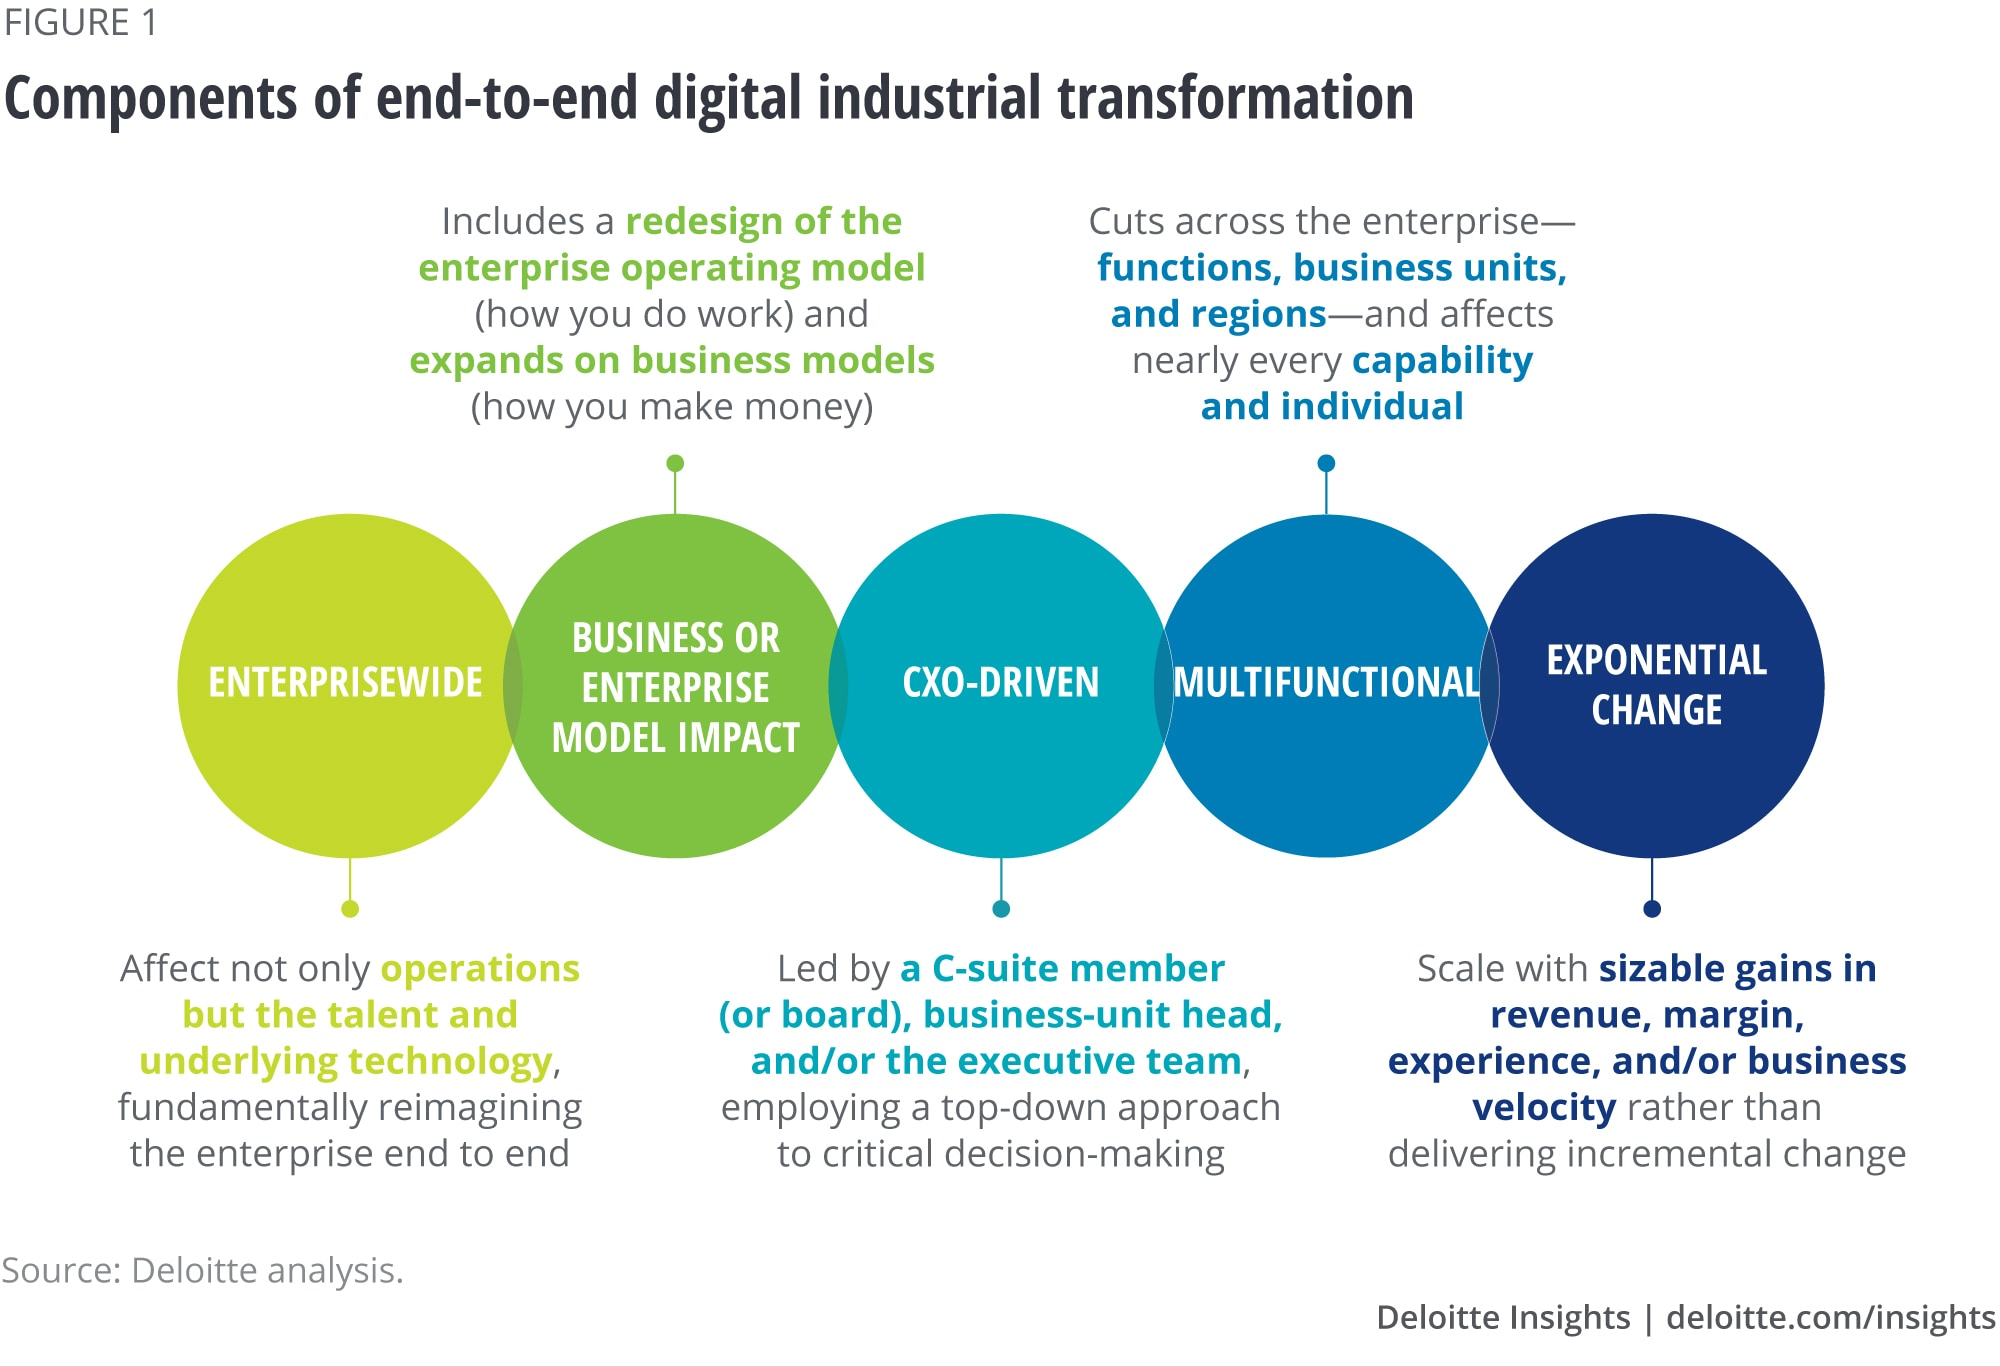 Characteristics of end-to-end digital industrial transformation